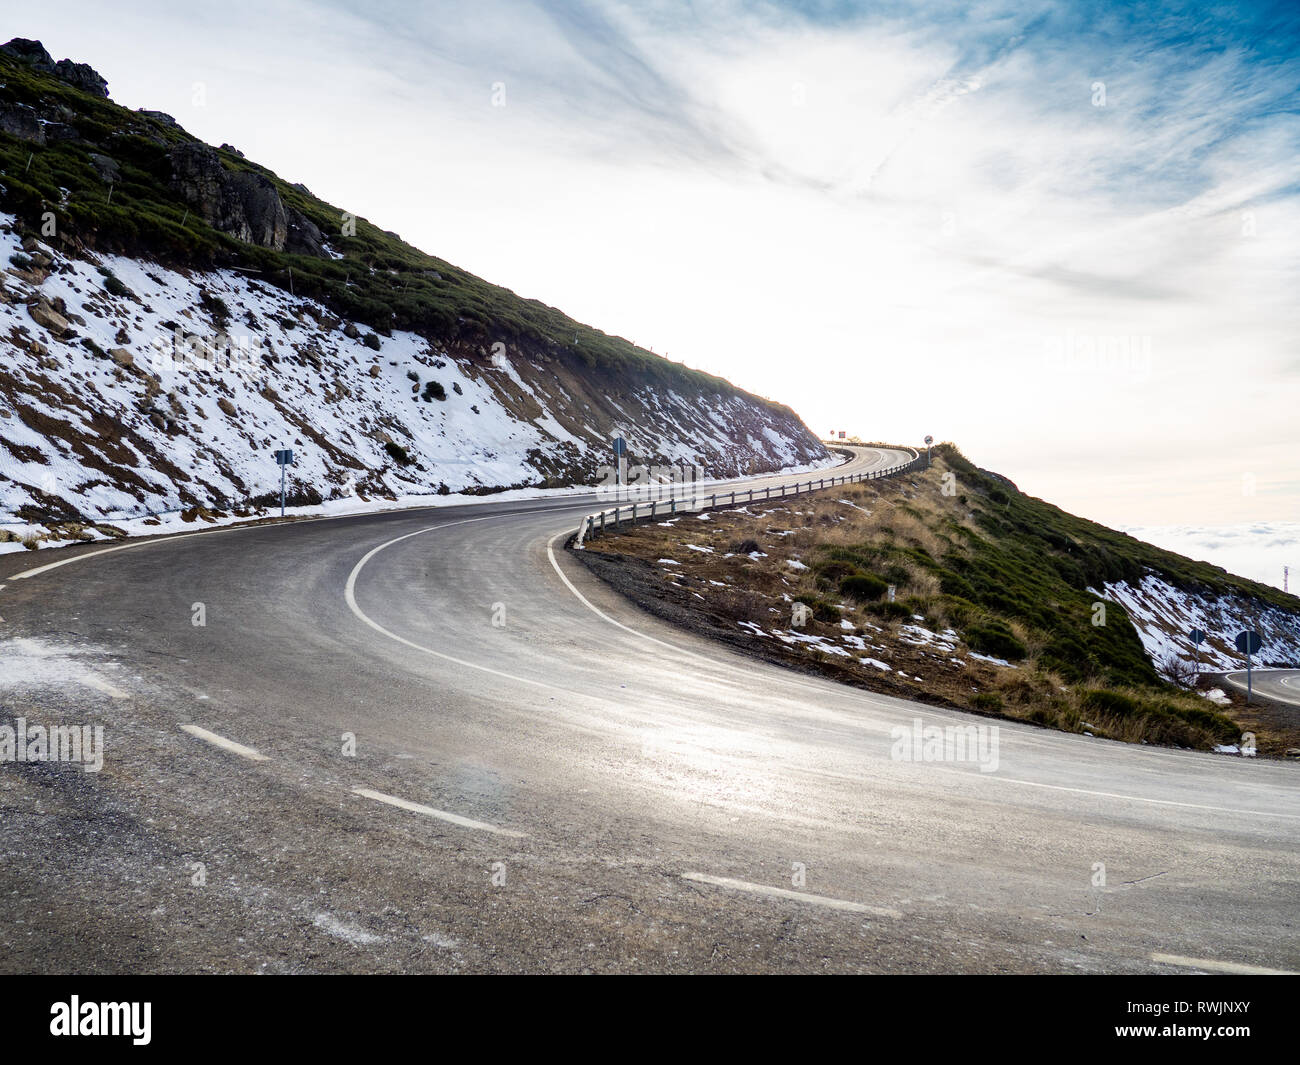 Very closed curve on a dangerous high mountain road with cloudy skies and snow on La Covatilla, Bejar (Salamanca) - Stock Image